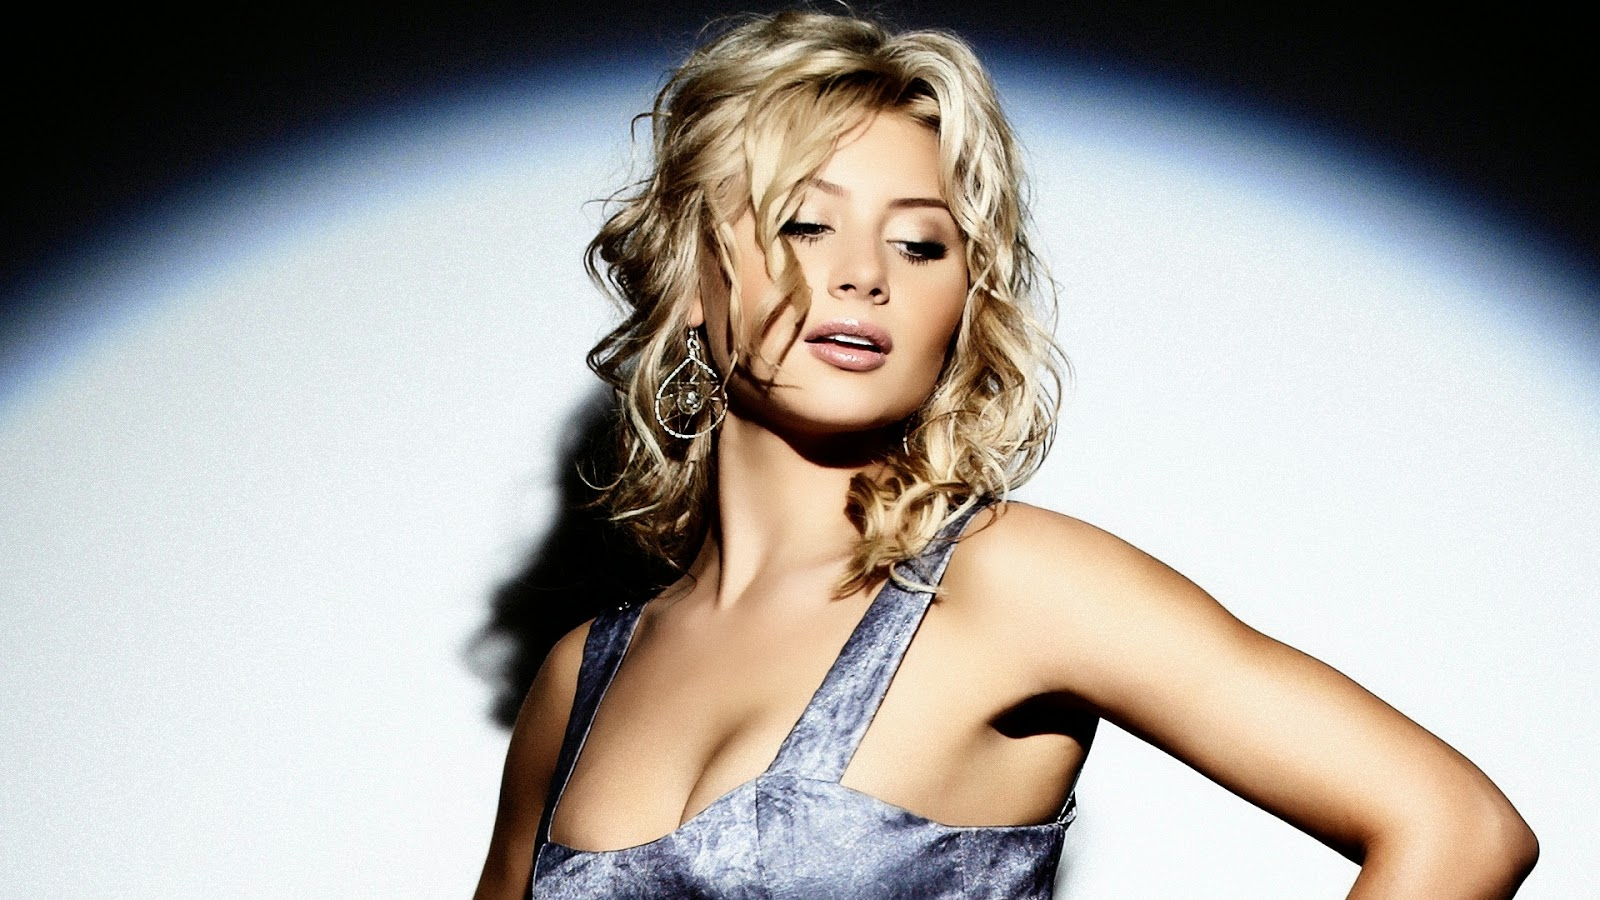 Celebrity hd wallpapers aly michalka hr wallpapers - Celeb wallpapers ...